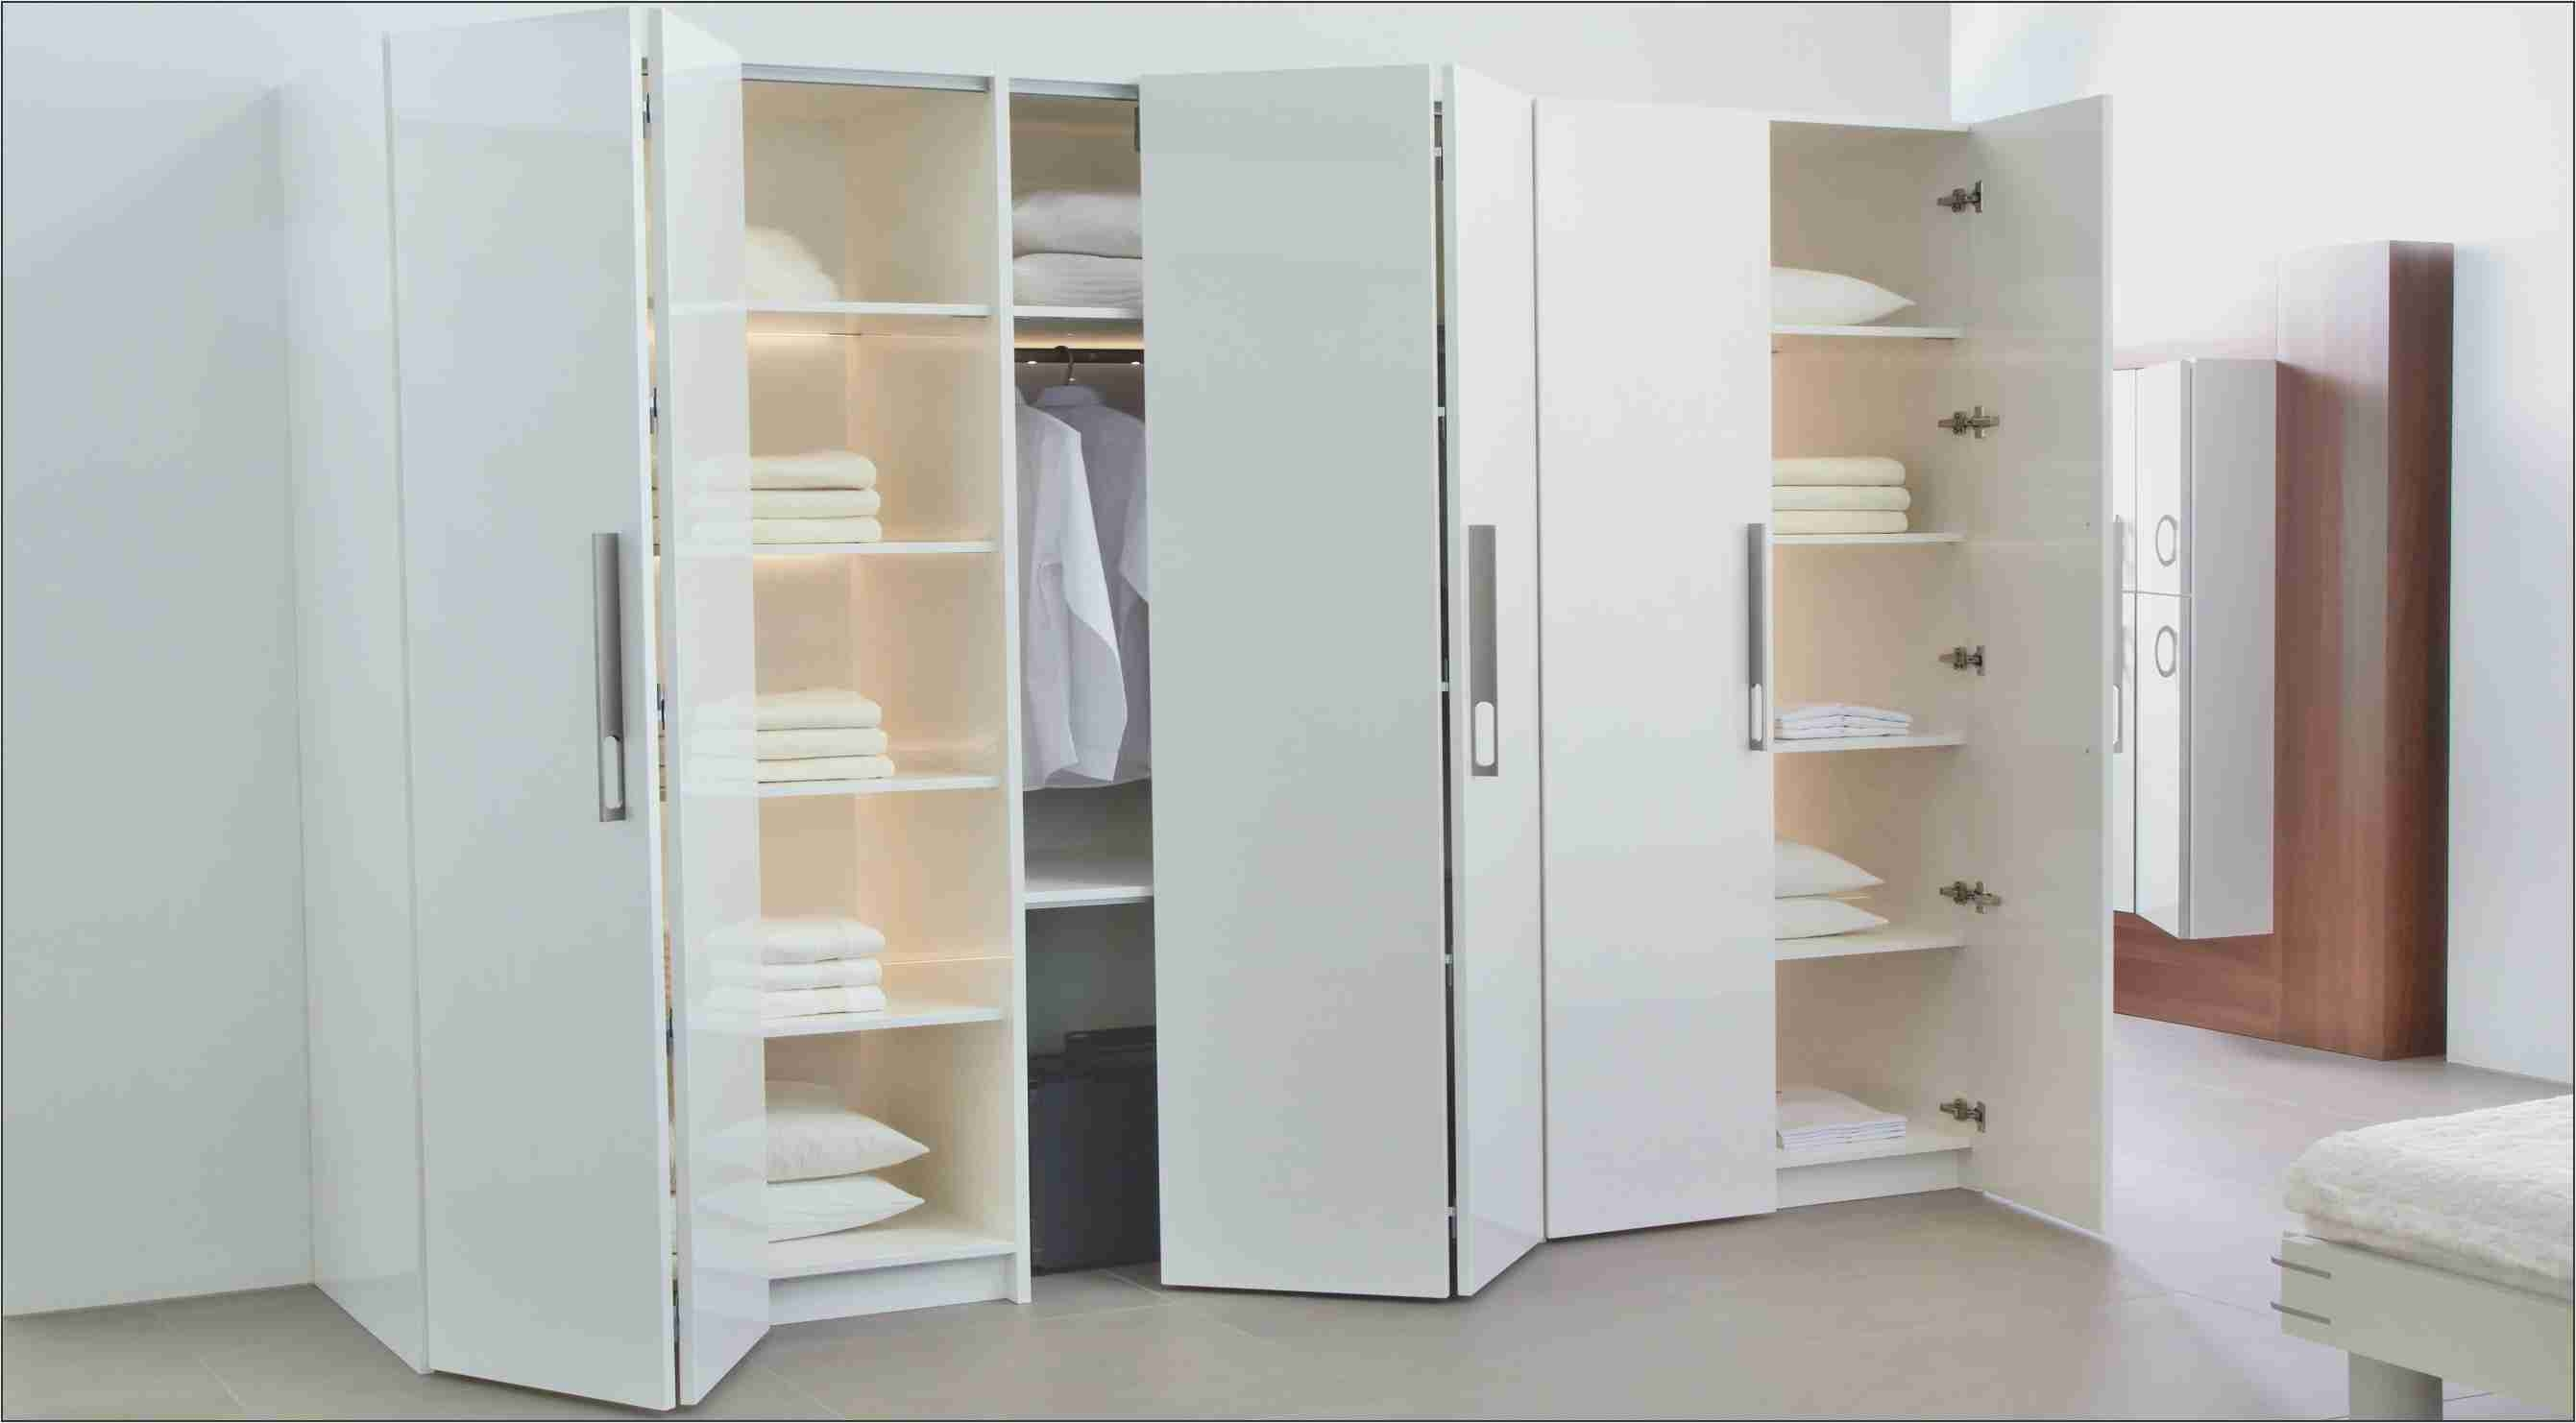 Sliding Folding Wardrobe Doors Saudireiki Throughout Folding Door Wardrobes (View 10 of 25)